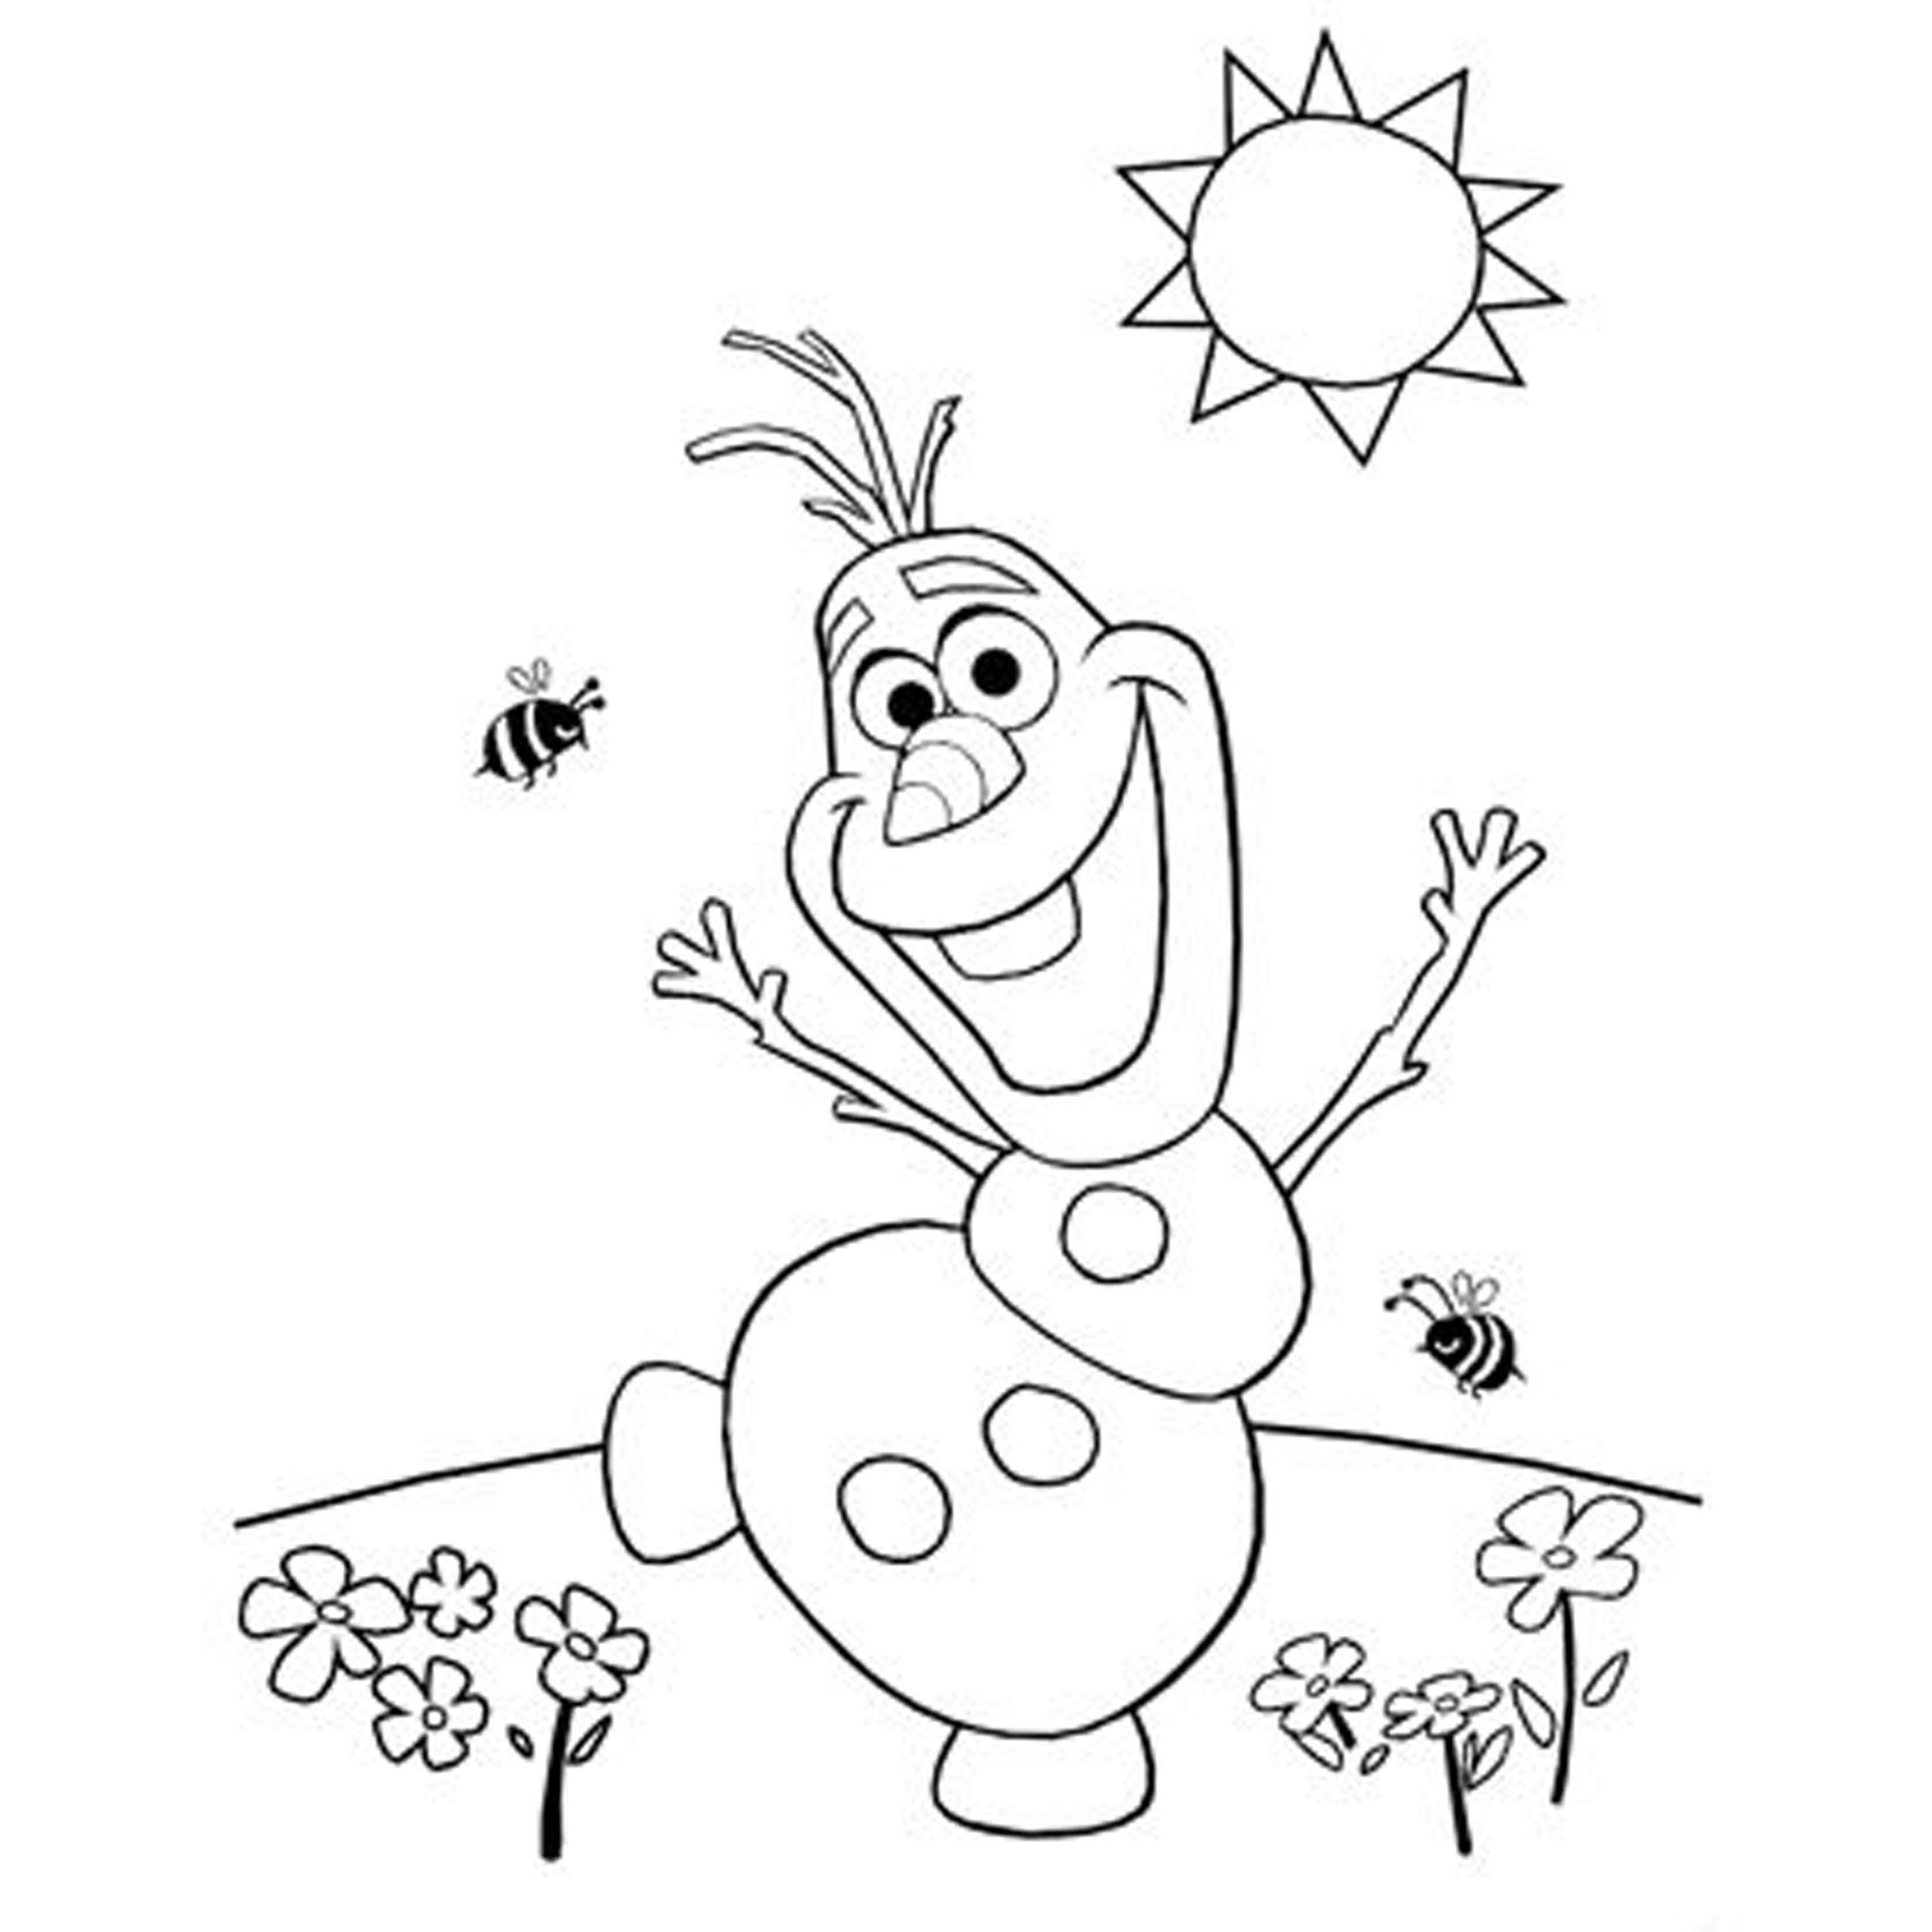 2550x2550 Printable Coloring Pages Frozen Olaf Printable Menu And Chart